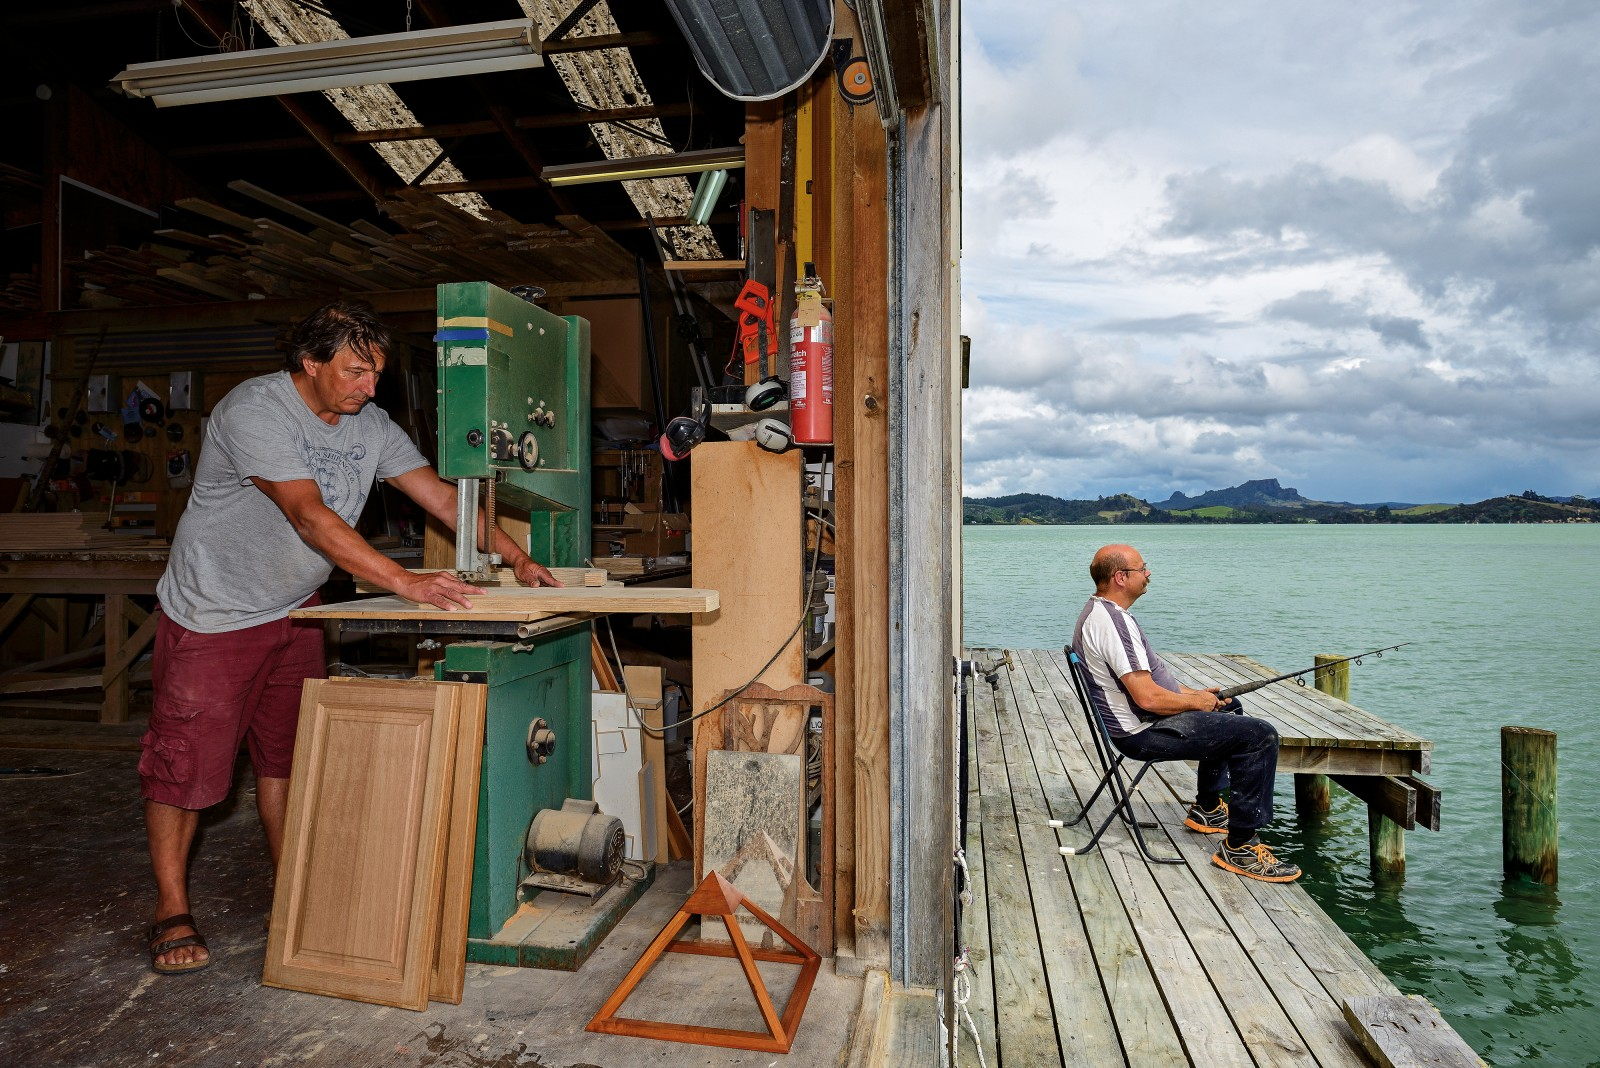 """Sorry, he's on the other line"" would be a phrase well suited to workers at Joachim Kupiec's joinery company on the shores of Whangaroa Harbour, where John Argent dangles a bait during his lunch break while the boss works on. Kupiec has an interest in the healing properties of pyramids, and has built many kitset versions and (so far) one full-size model—his home."